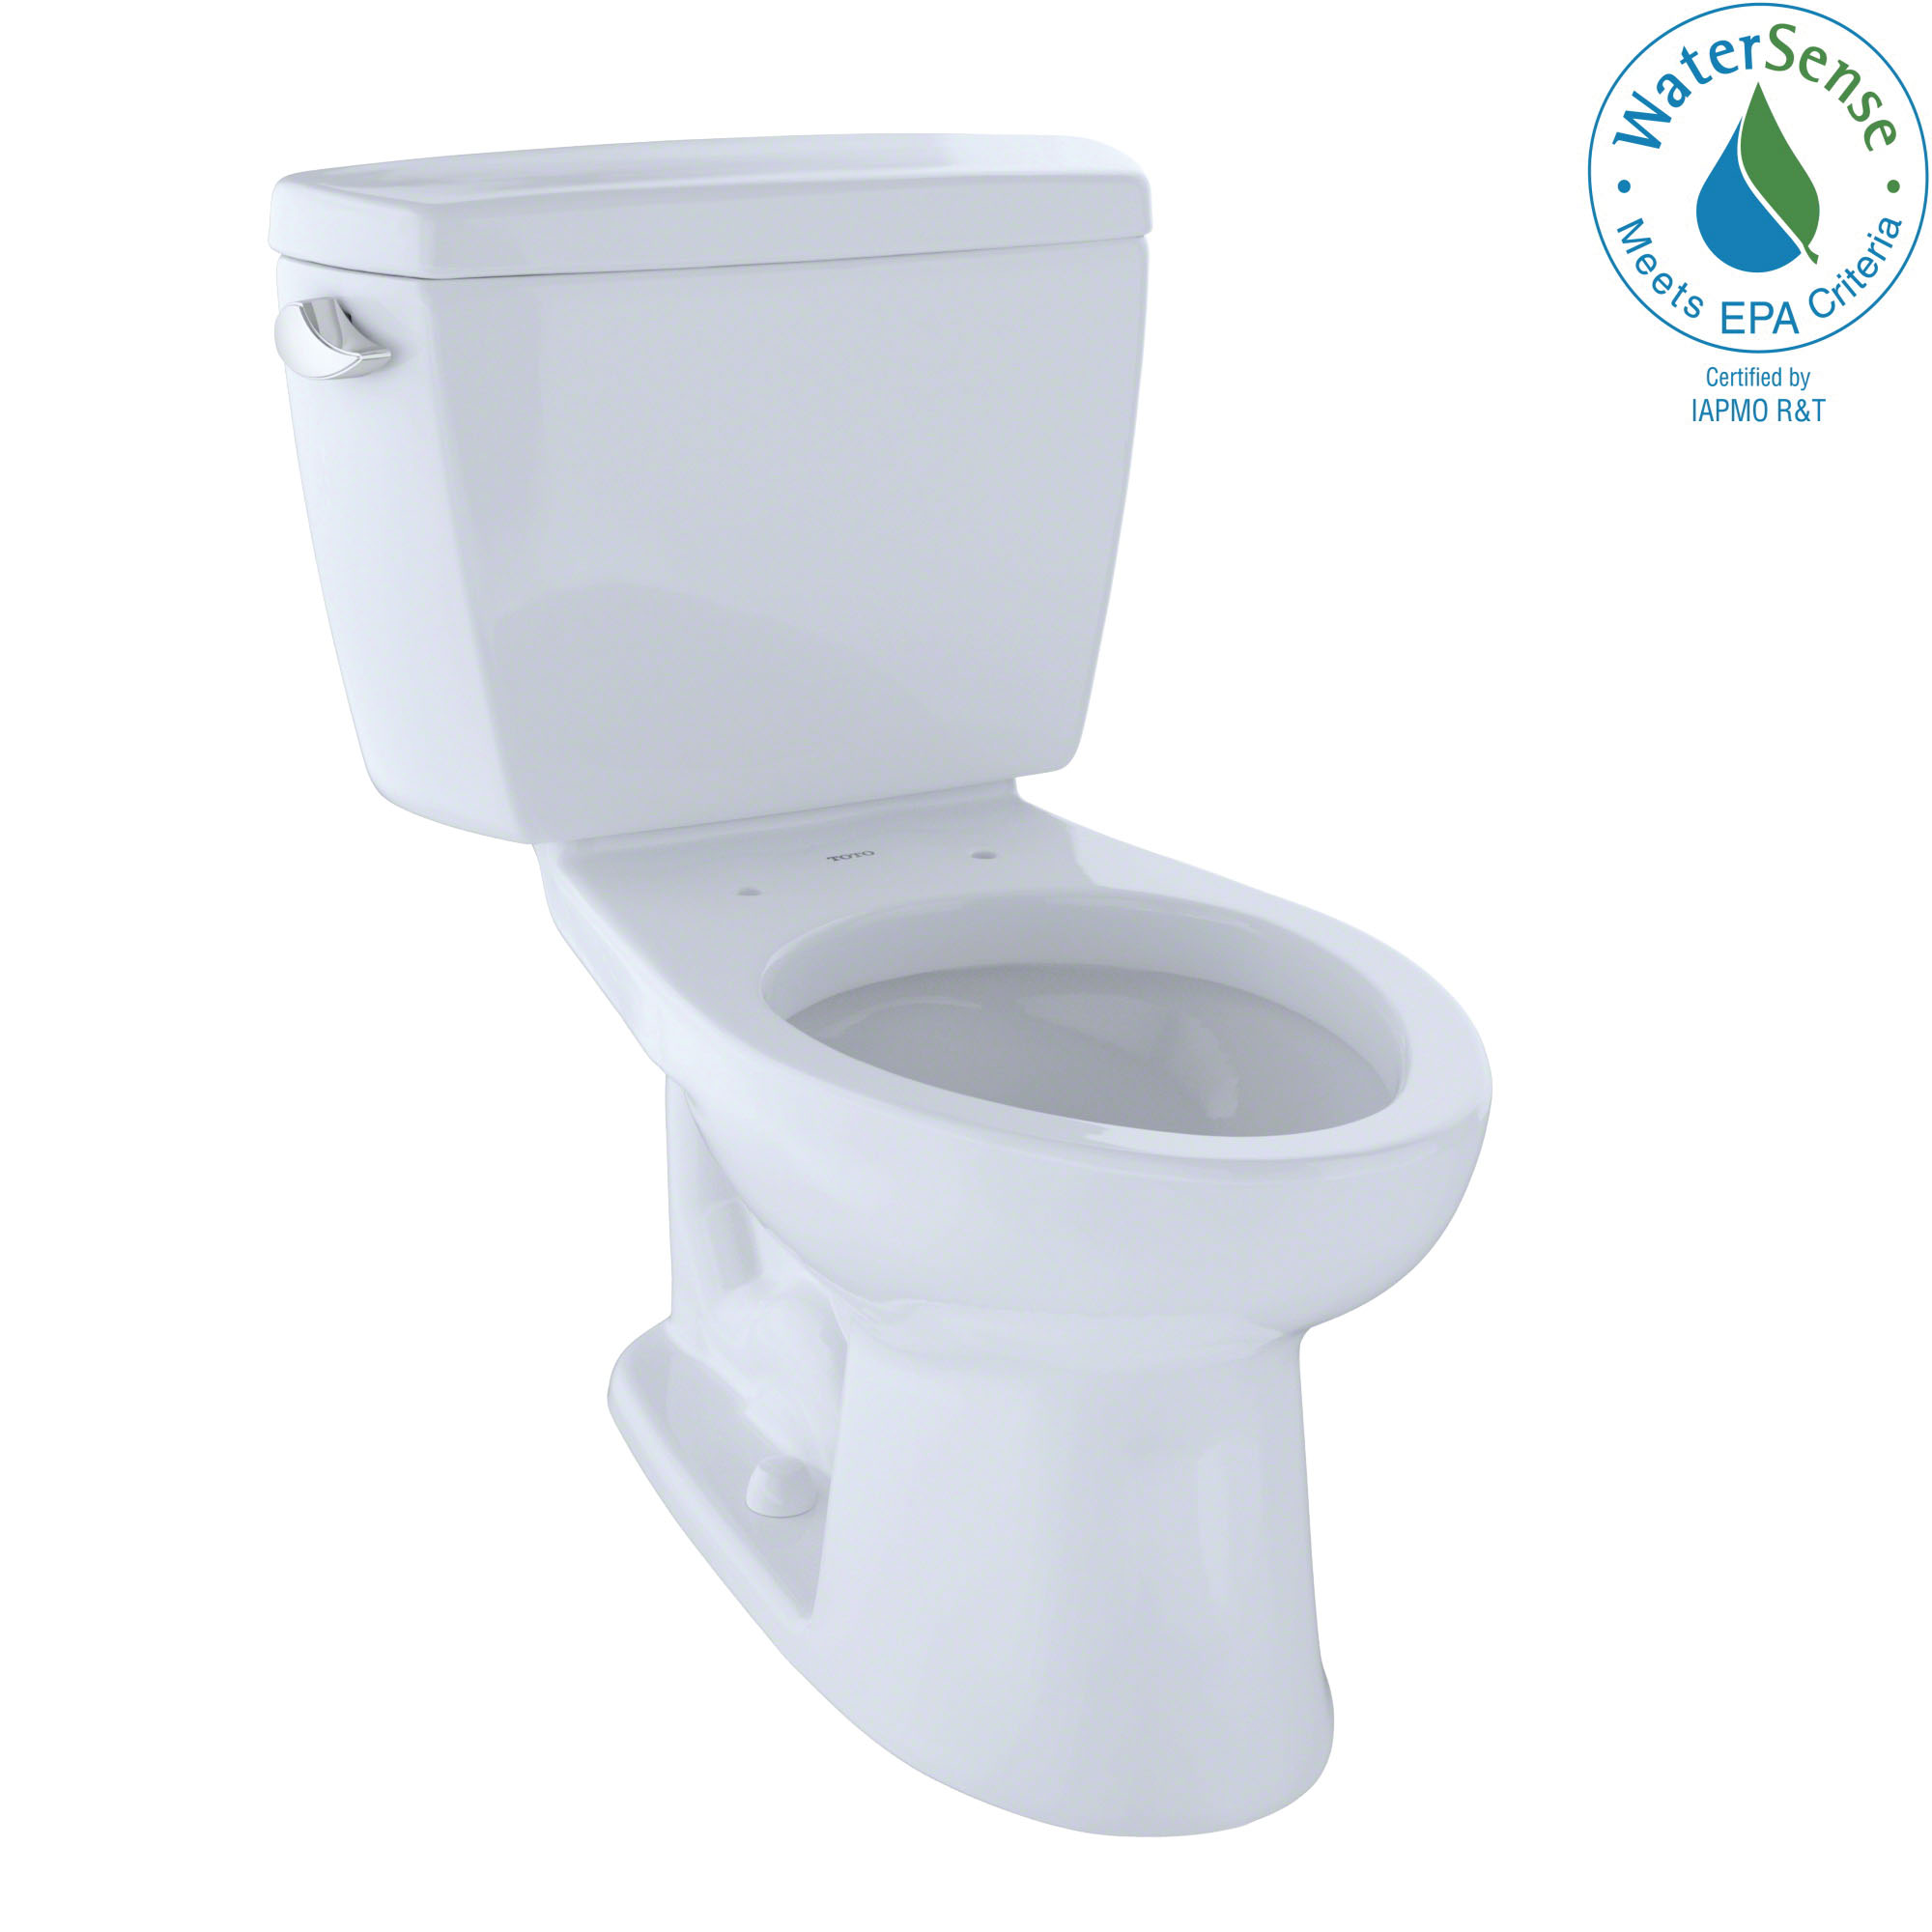 Toto® CST744EG#01 2-Piece Universal Height Close Coupled Toilet With Left-Hand Chrome Trip Lever, Eco Drake®, Elongated Bowl, 15-5/8 in H Rim, 12 in Rough-In, 1.28 gpf, Cotton White, Import